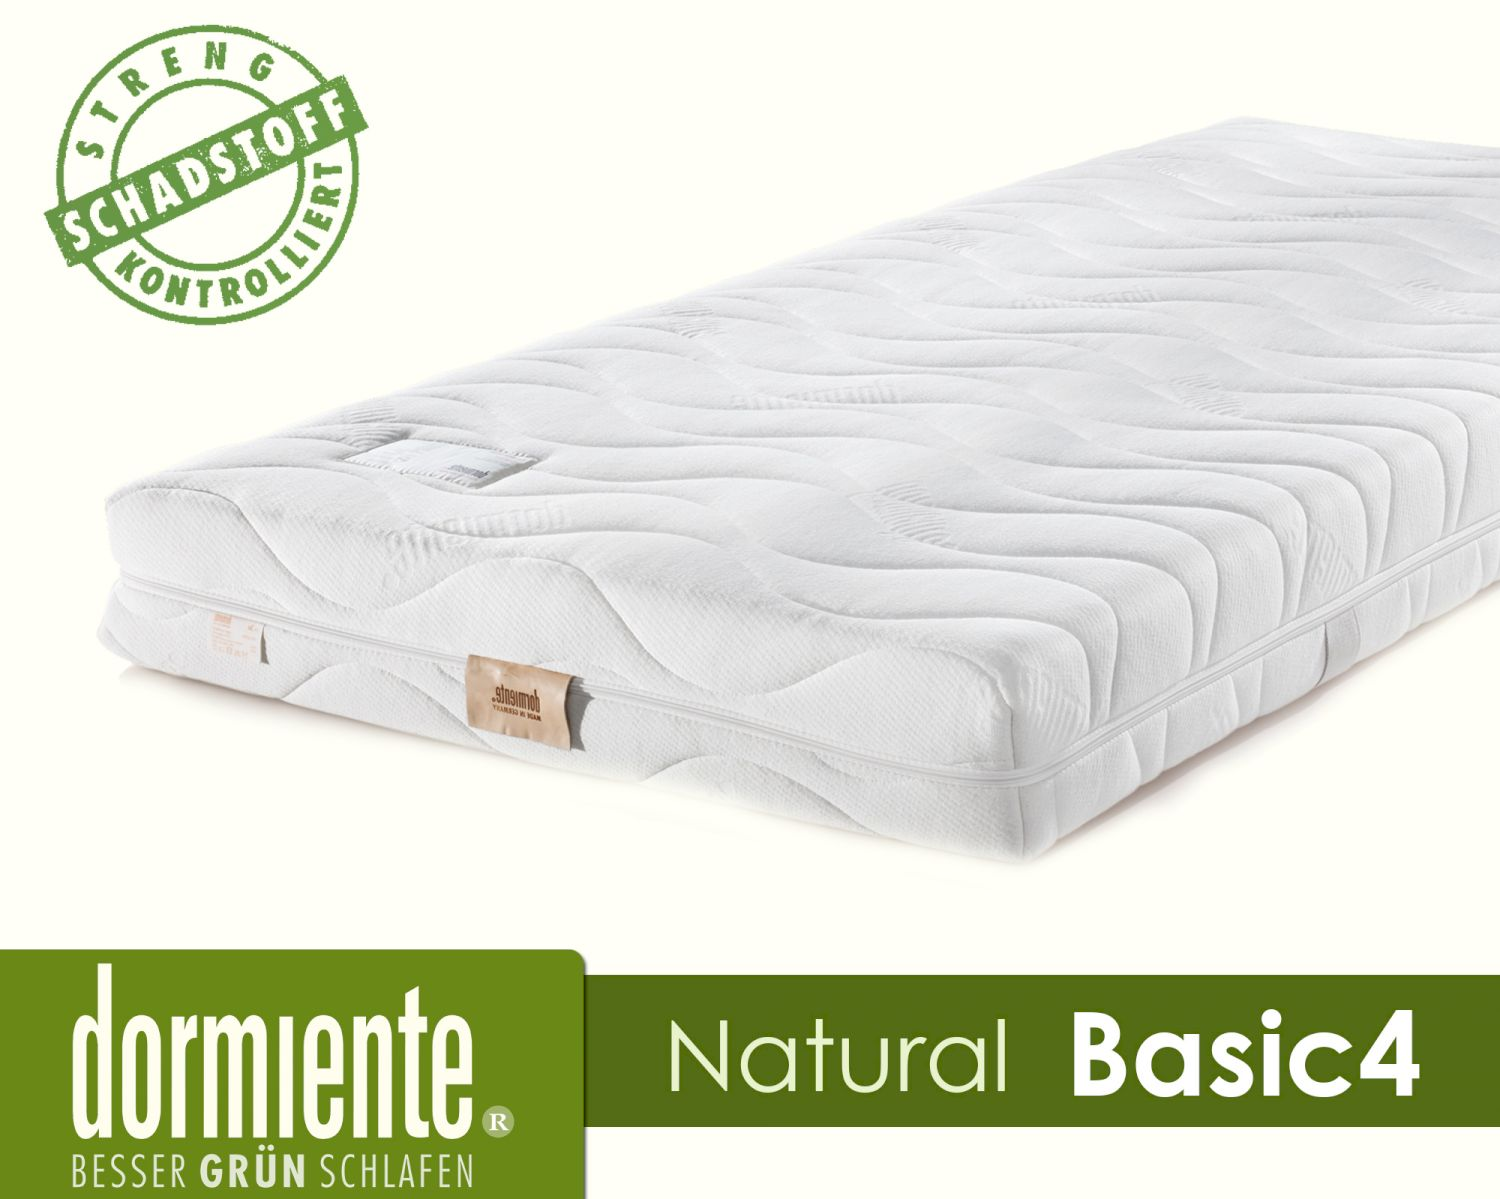 Matratzen Für Verstellbare Lattenroste Dormiente Natural Basic 4 Latex-matratzen • Slewo.com